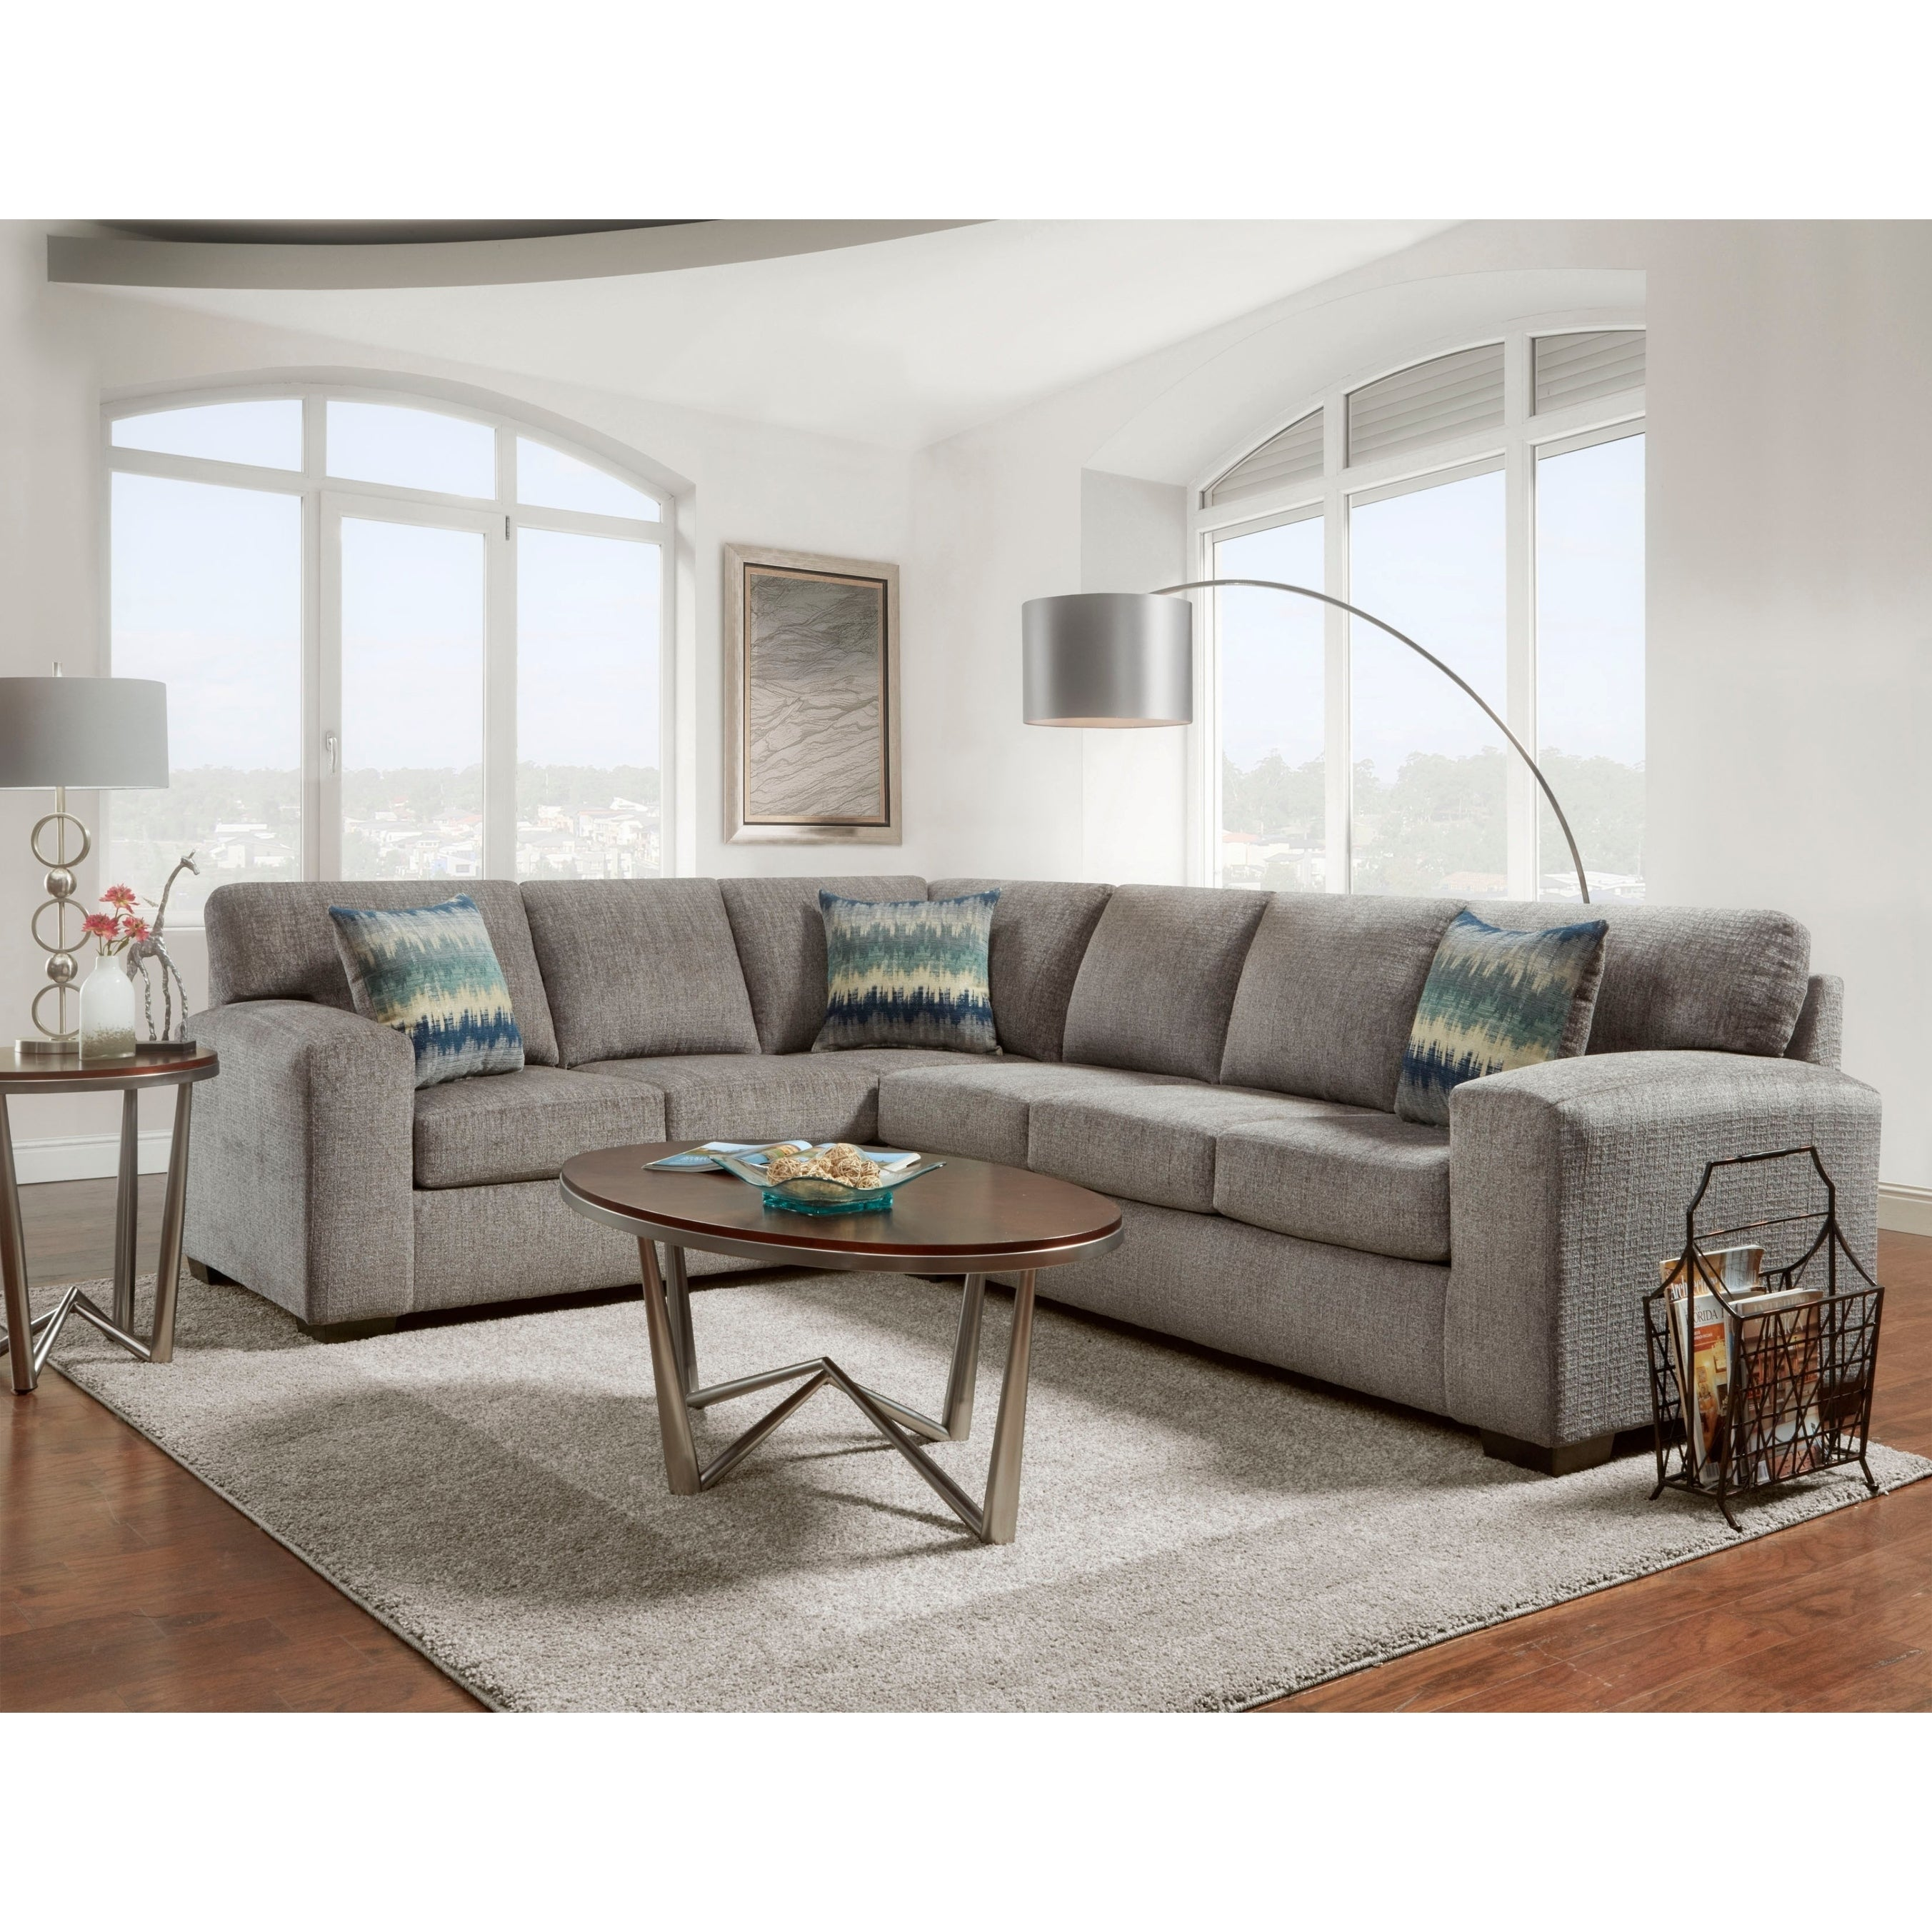 Shop Bergen Silverton Pewter Fabric Sectional Sofa - On Sale - Free ...